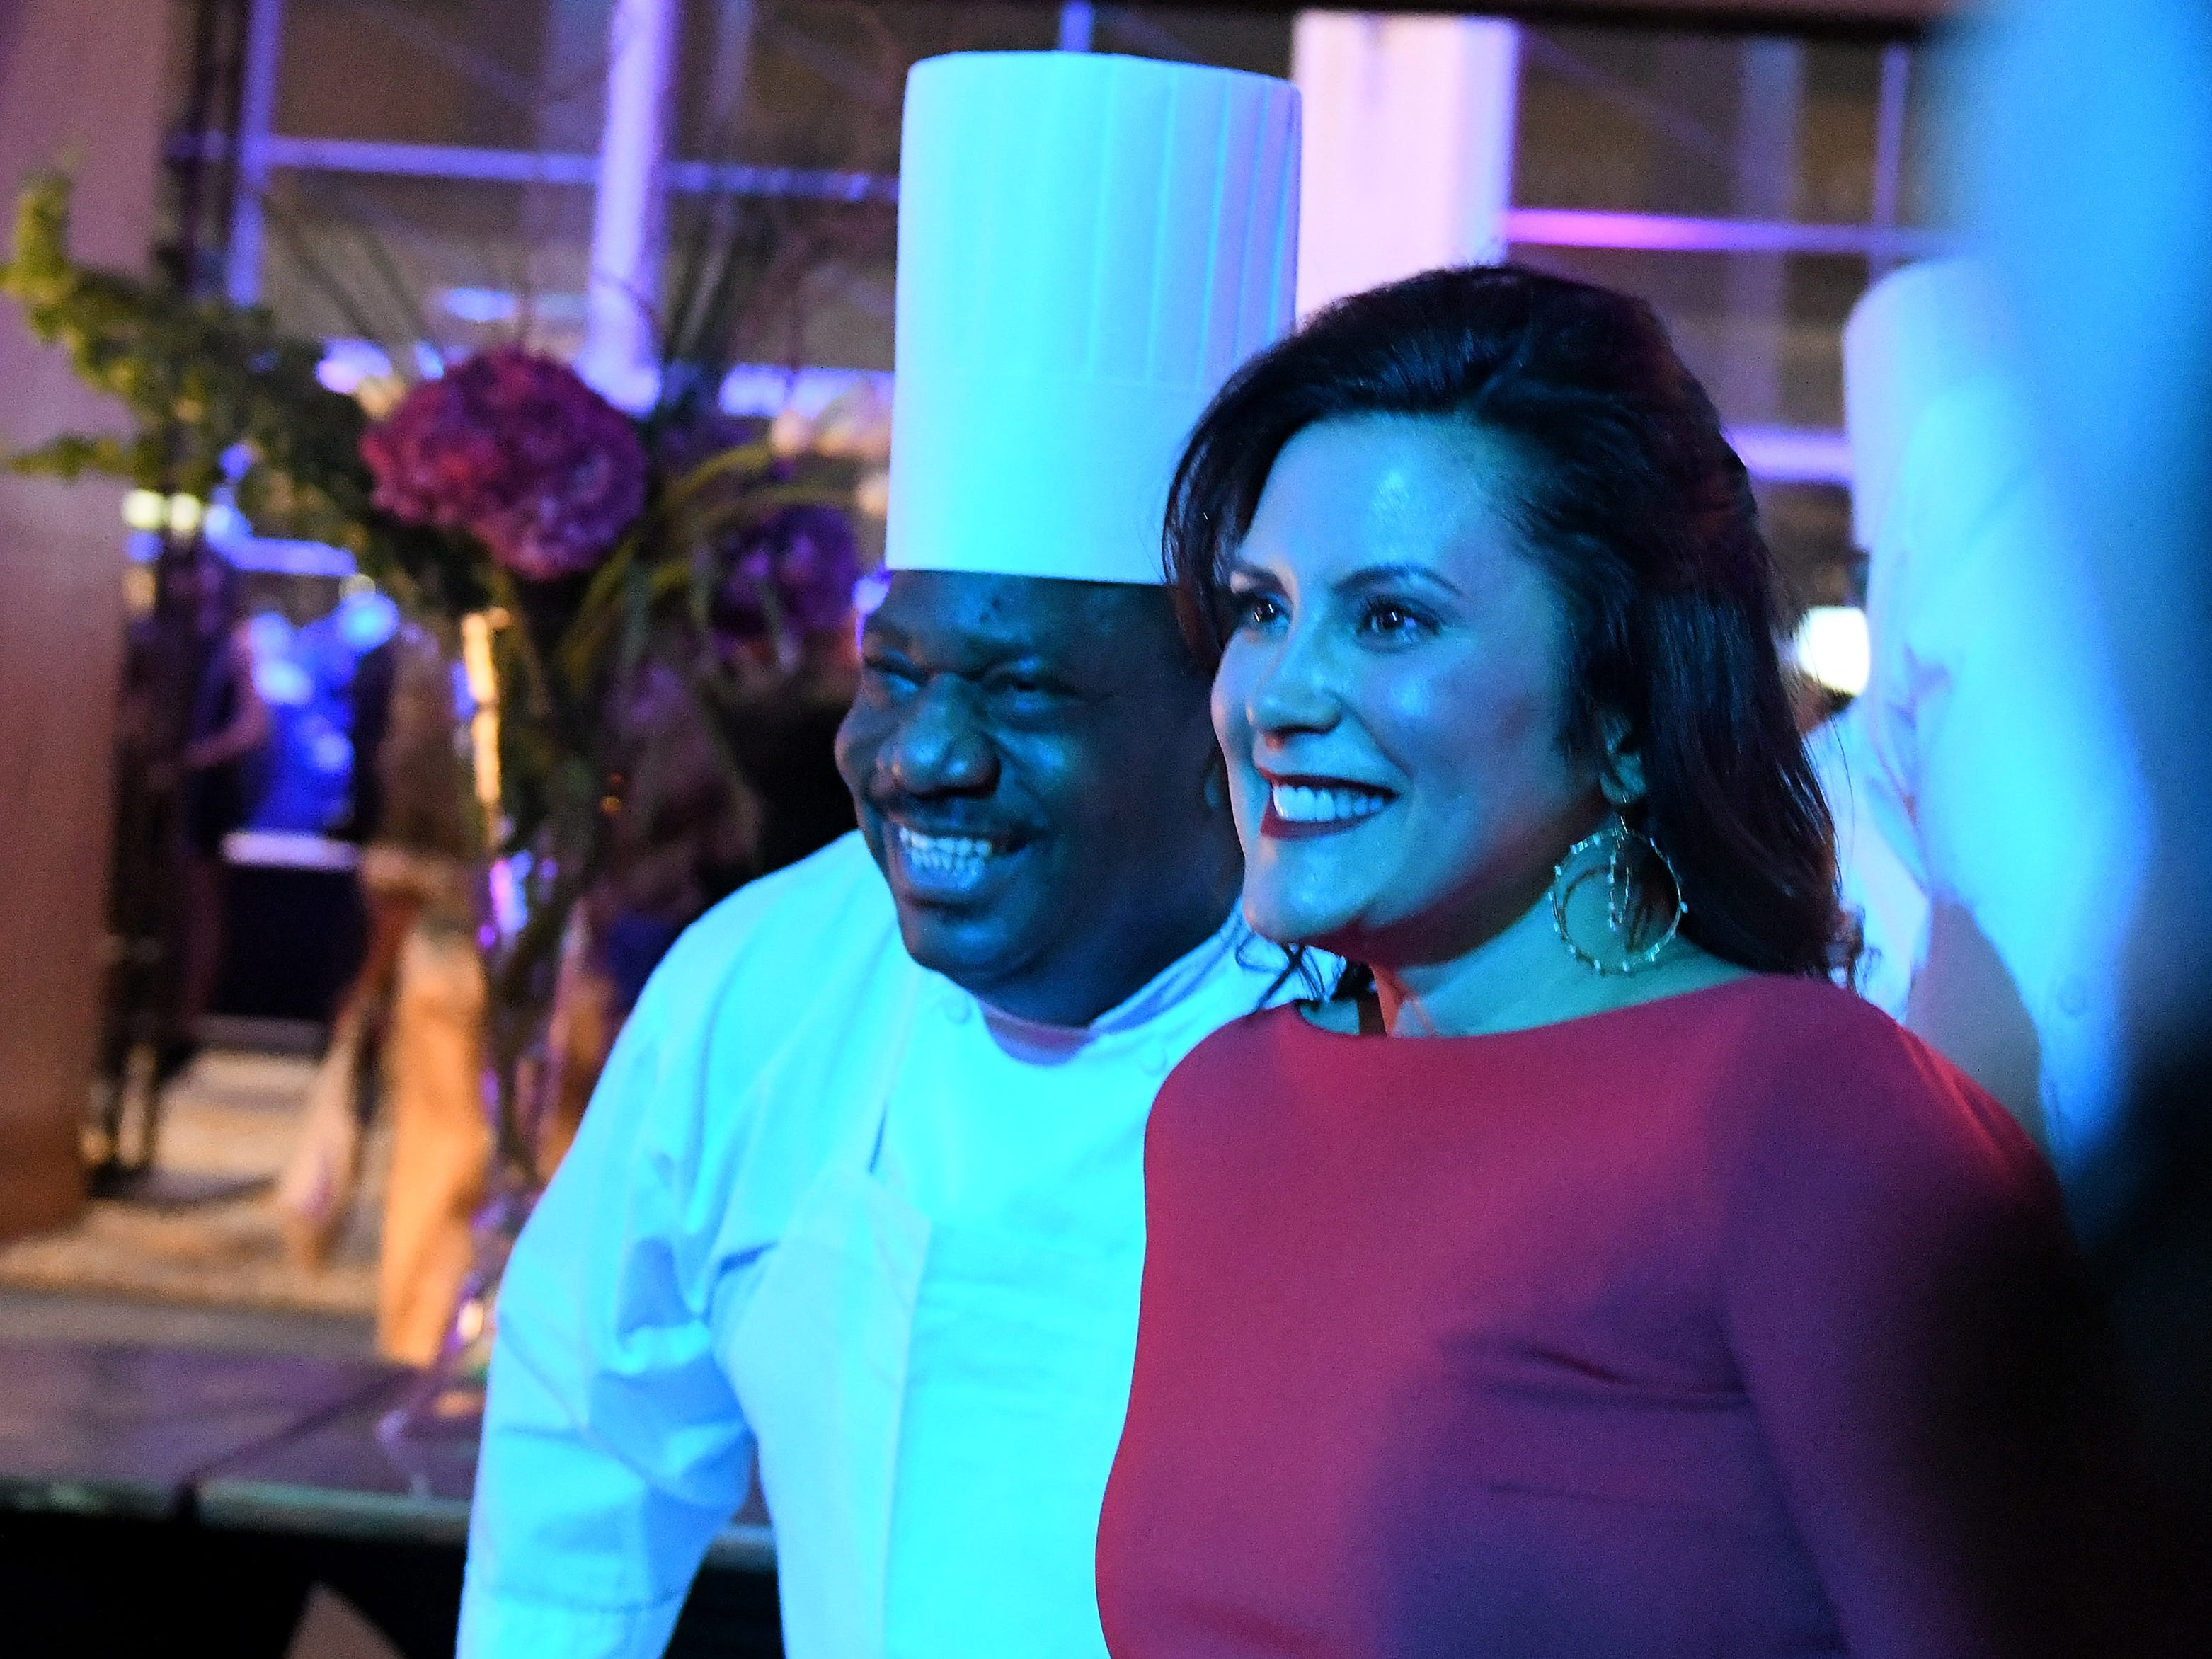 Gov. Gretchen Whitmer makes time for a photo with Chef Guy Richardson while serving food at the inauguration celebration.